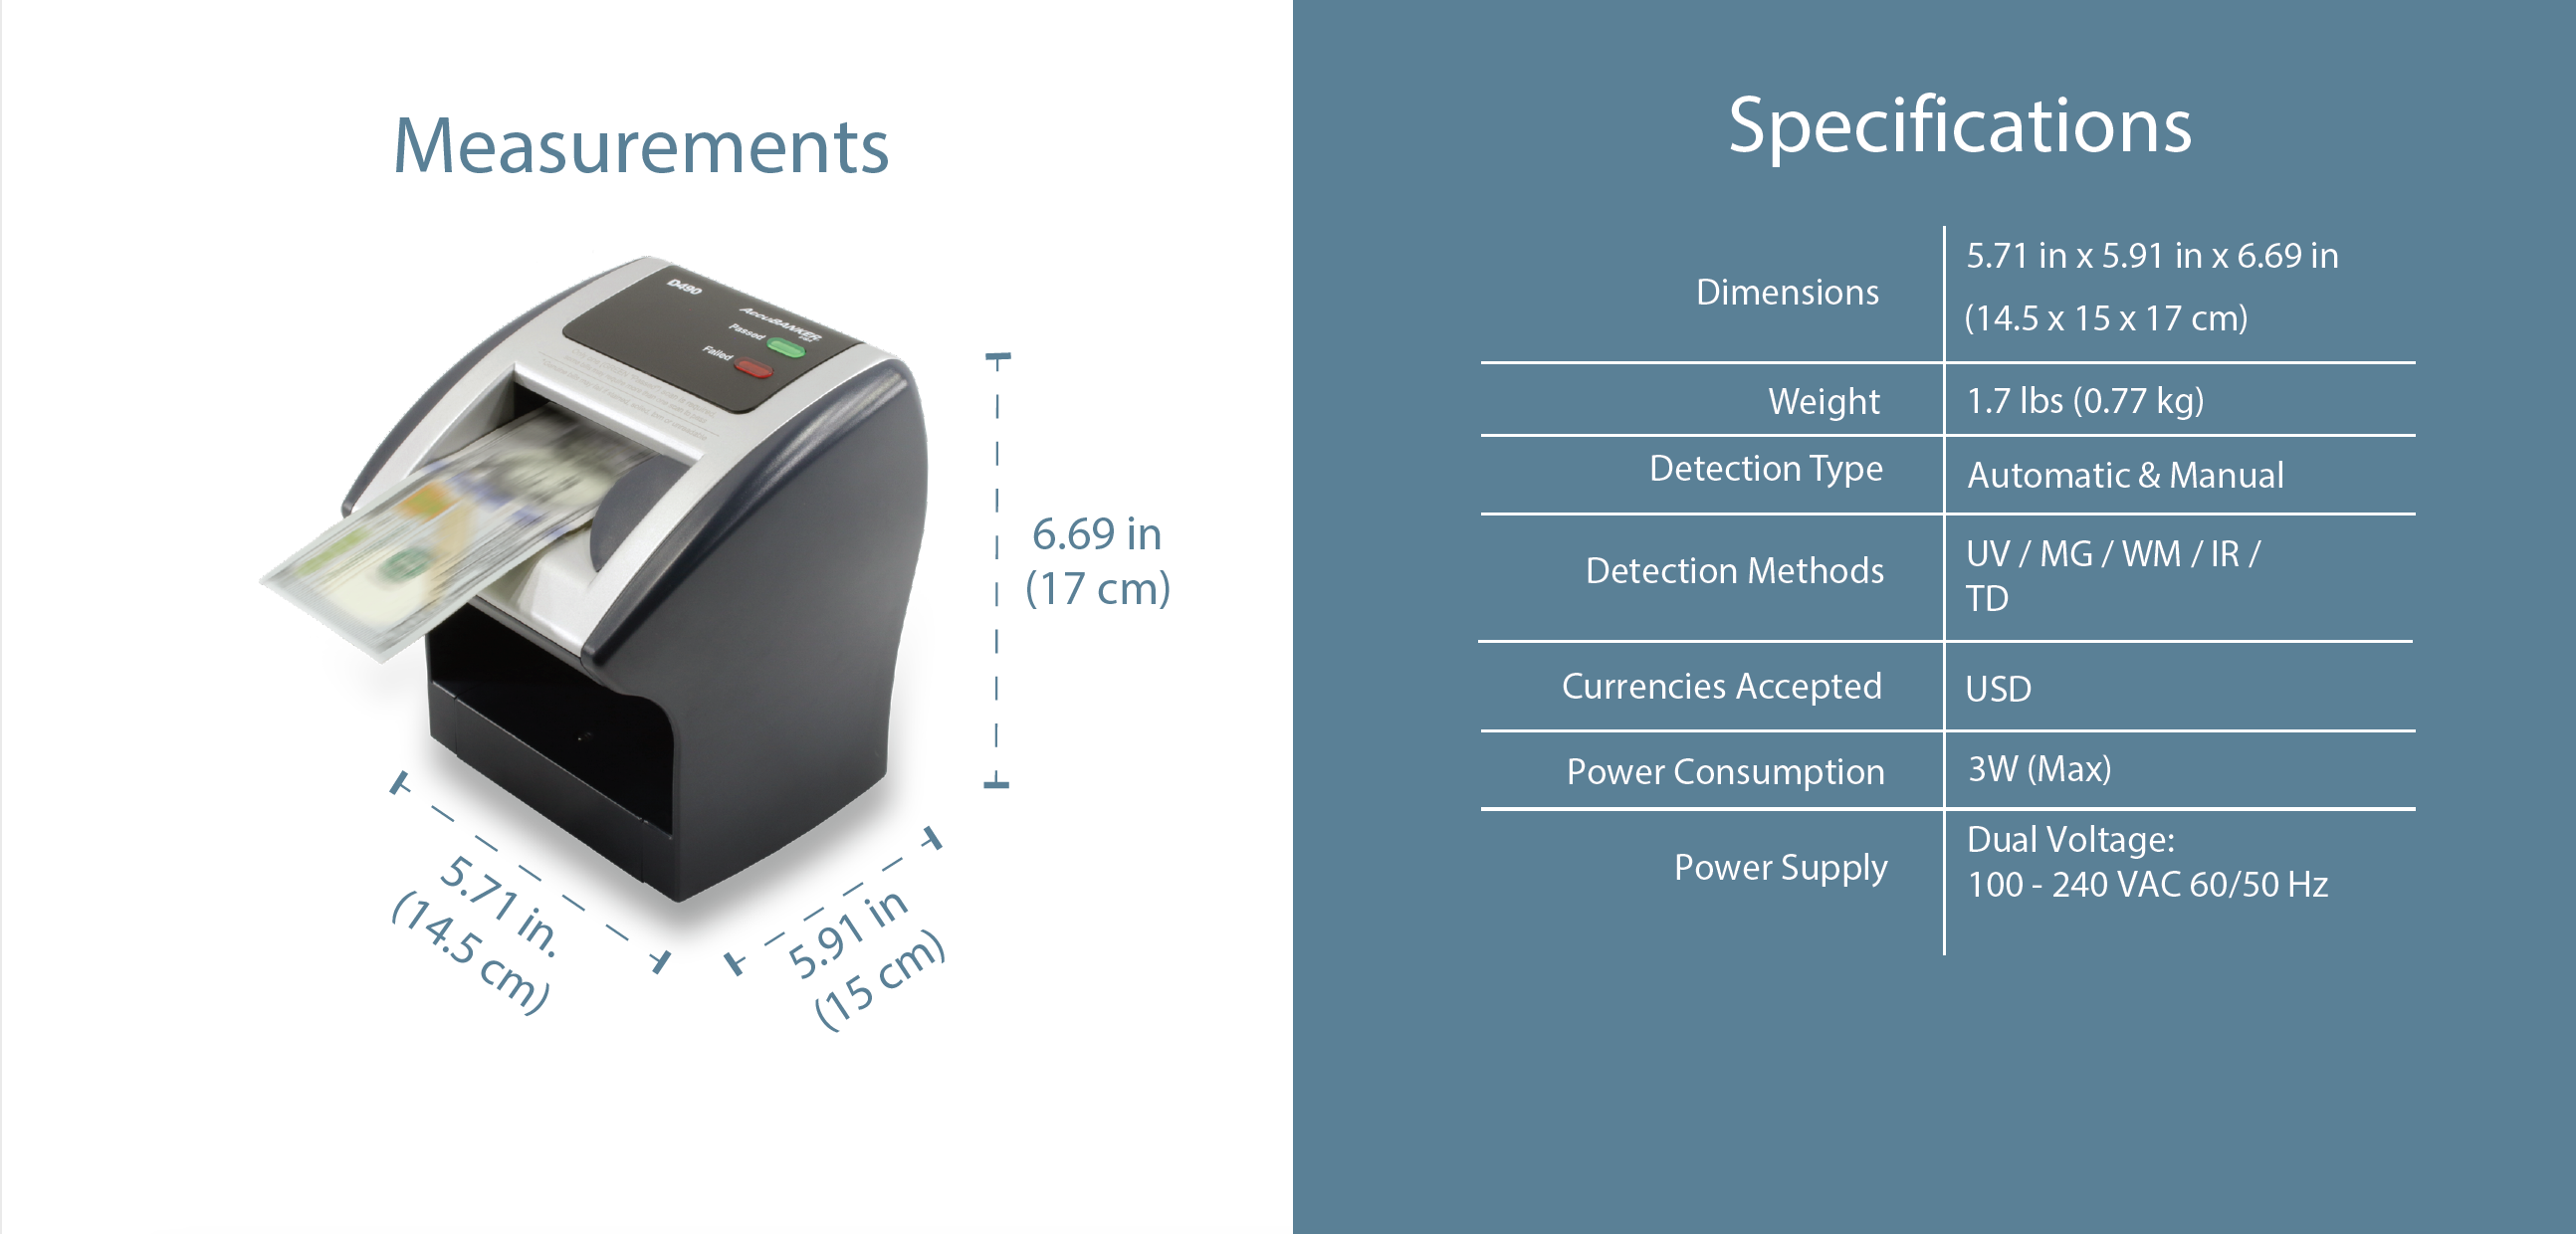 D490 Bill and Card Scanner Features & Specifications